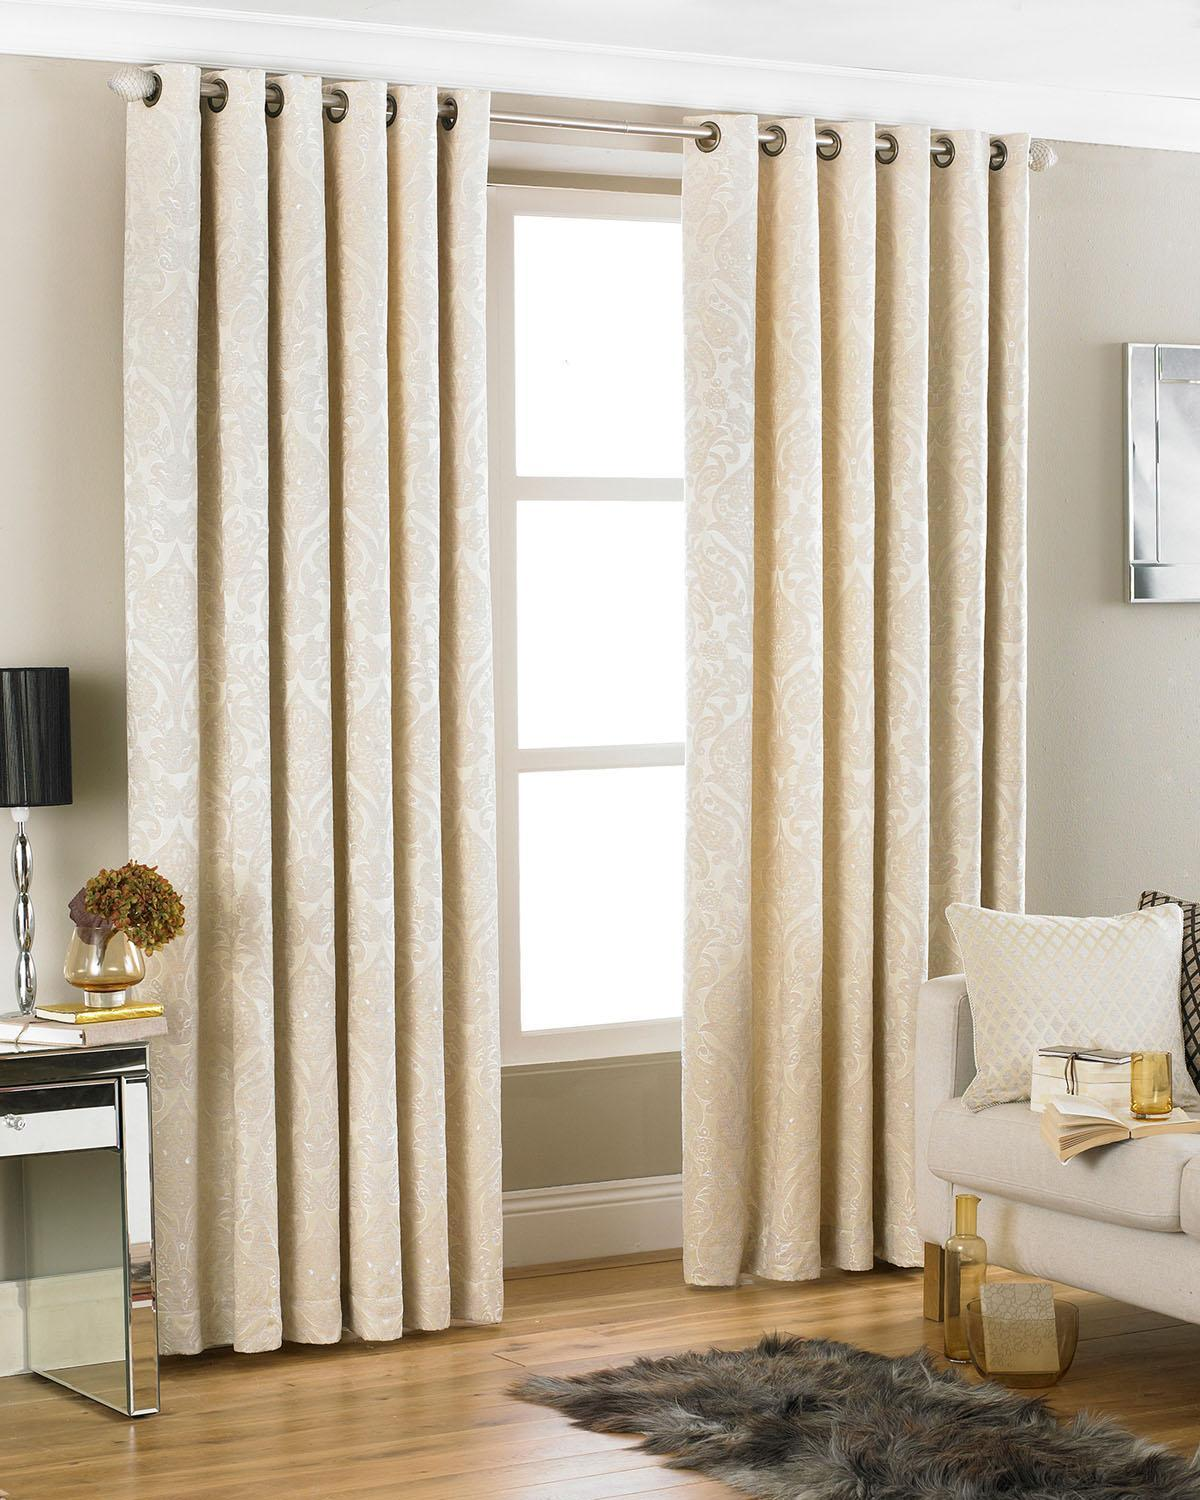 Riva Ready Made Curtains Firenze Ready Made Eyelet Curtains Cream Picture